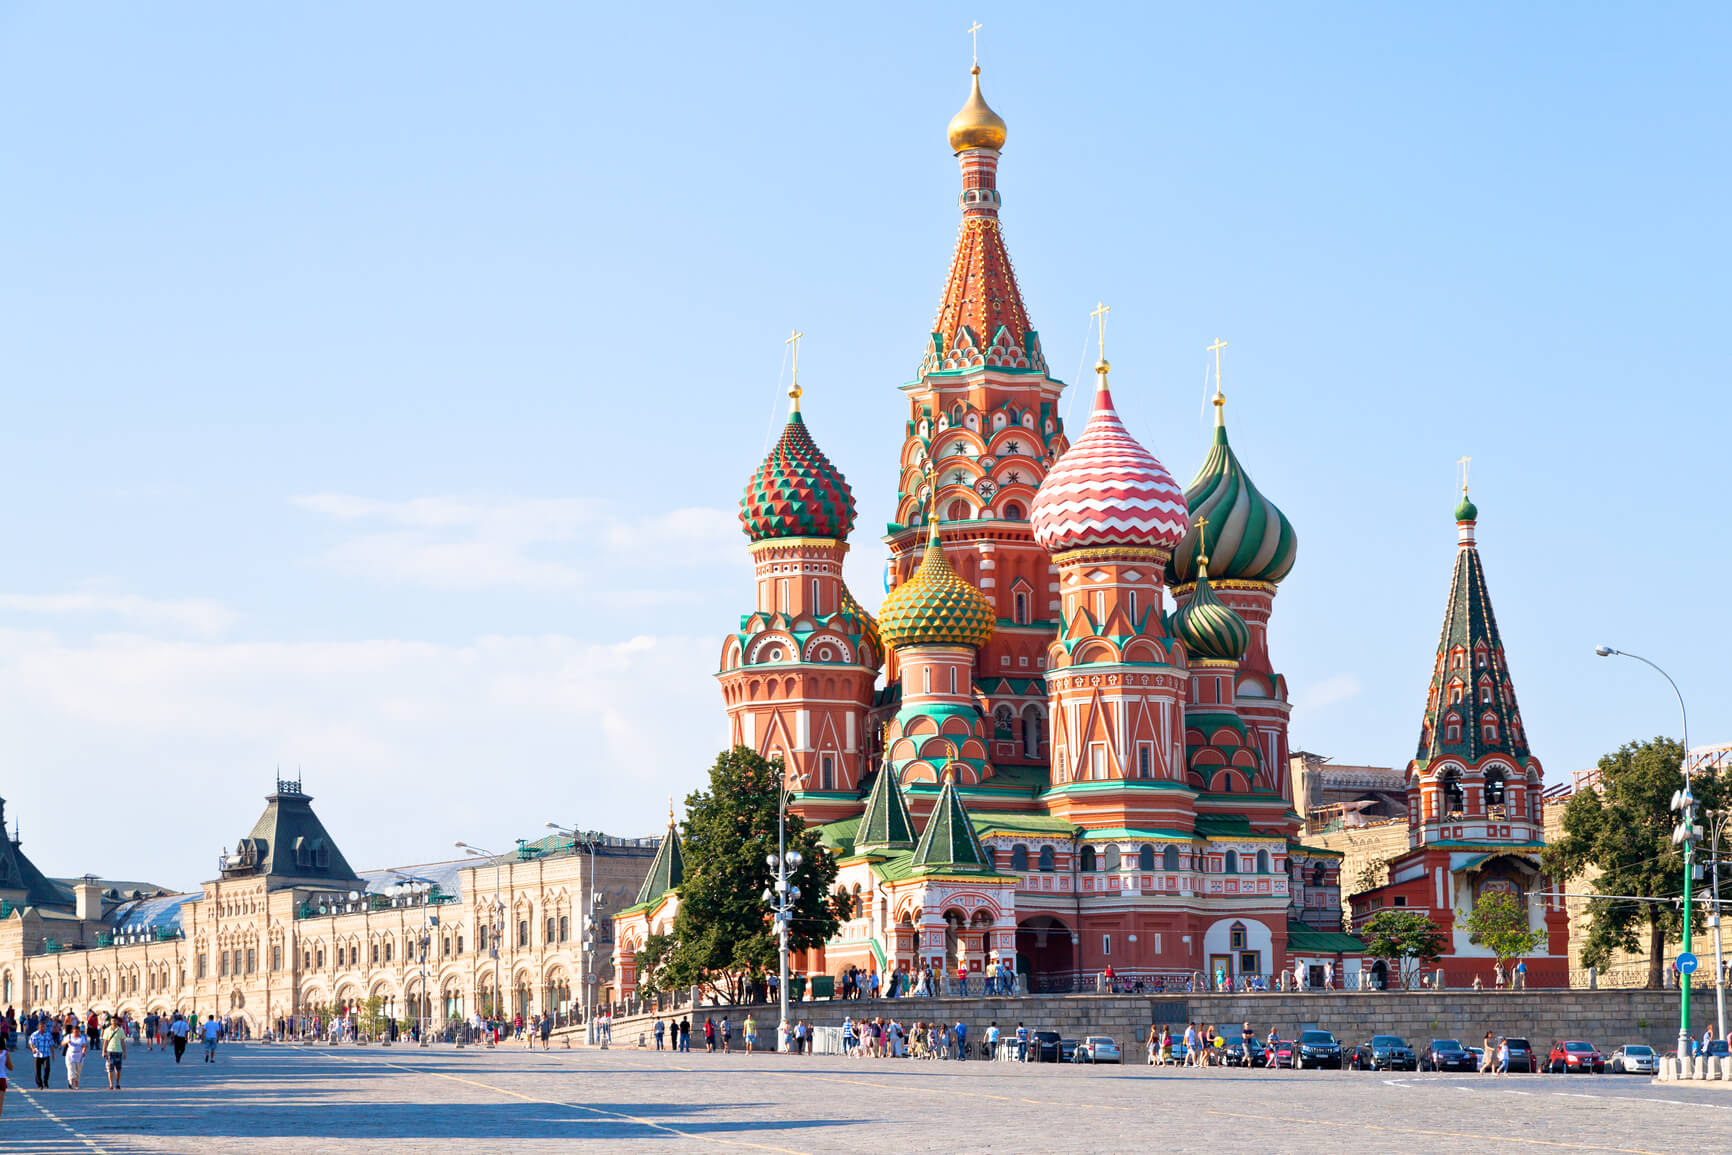 Non-stop from Samarkand, Uzbekistan to Moscow, Russia for only $276 roundtrip